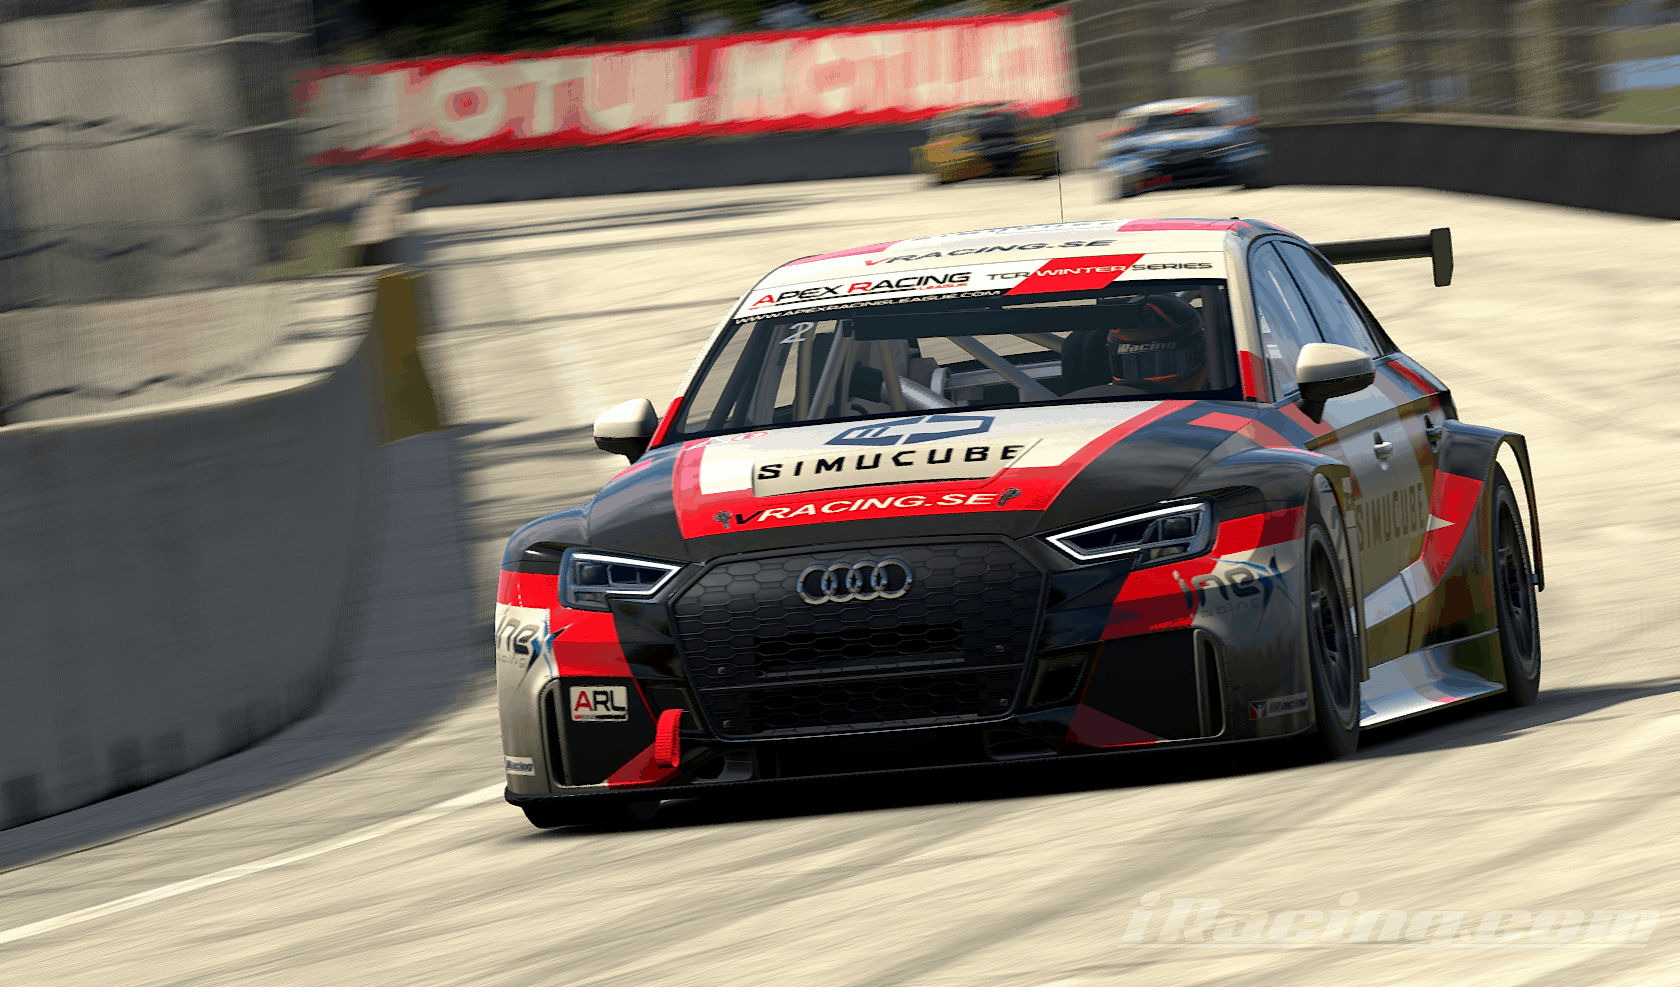 ARL TCR Winter Series 2019/20 Belle Isle 4